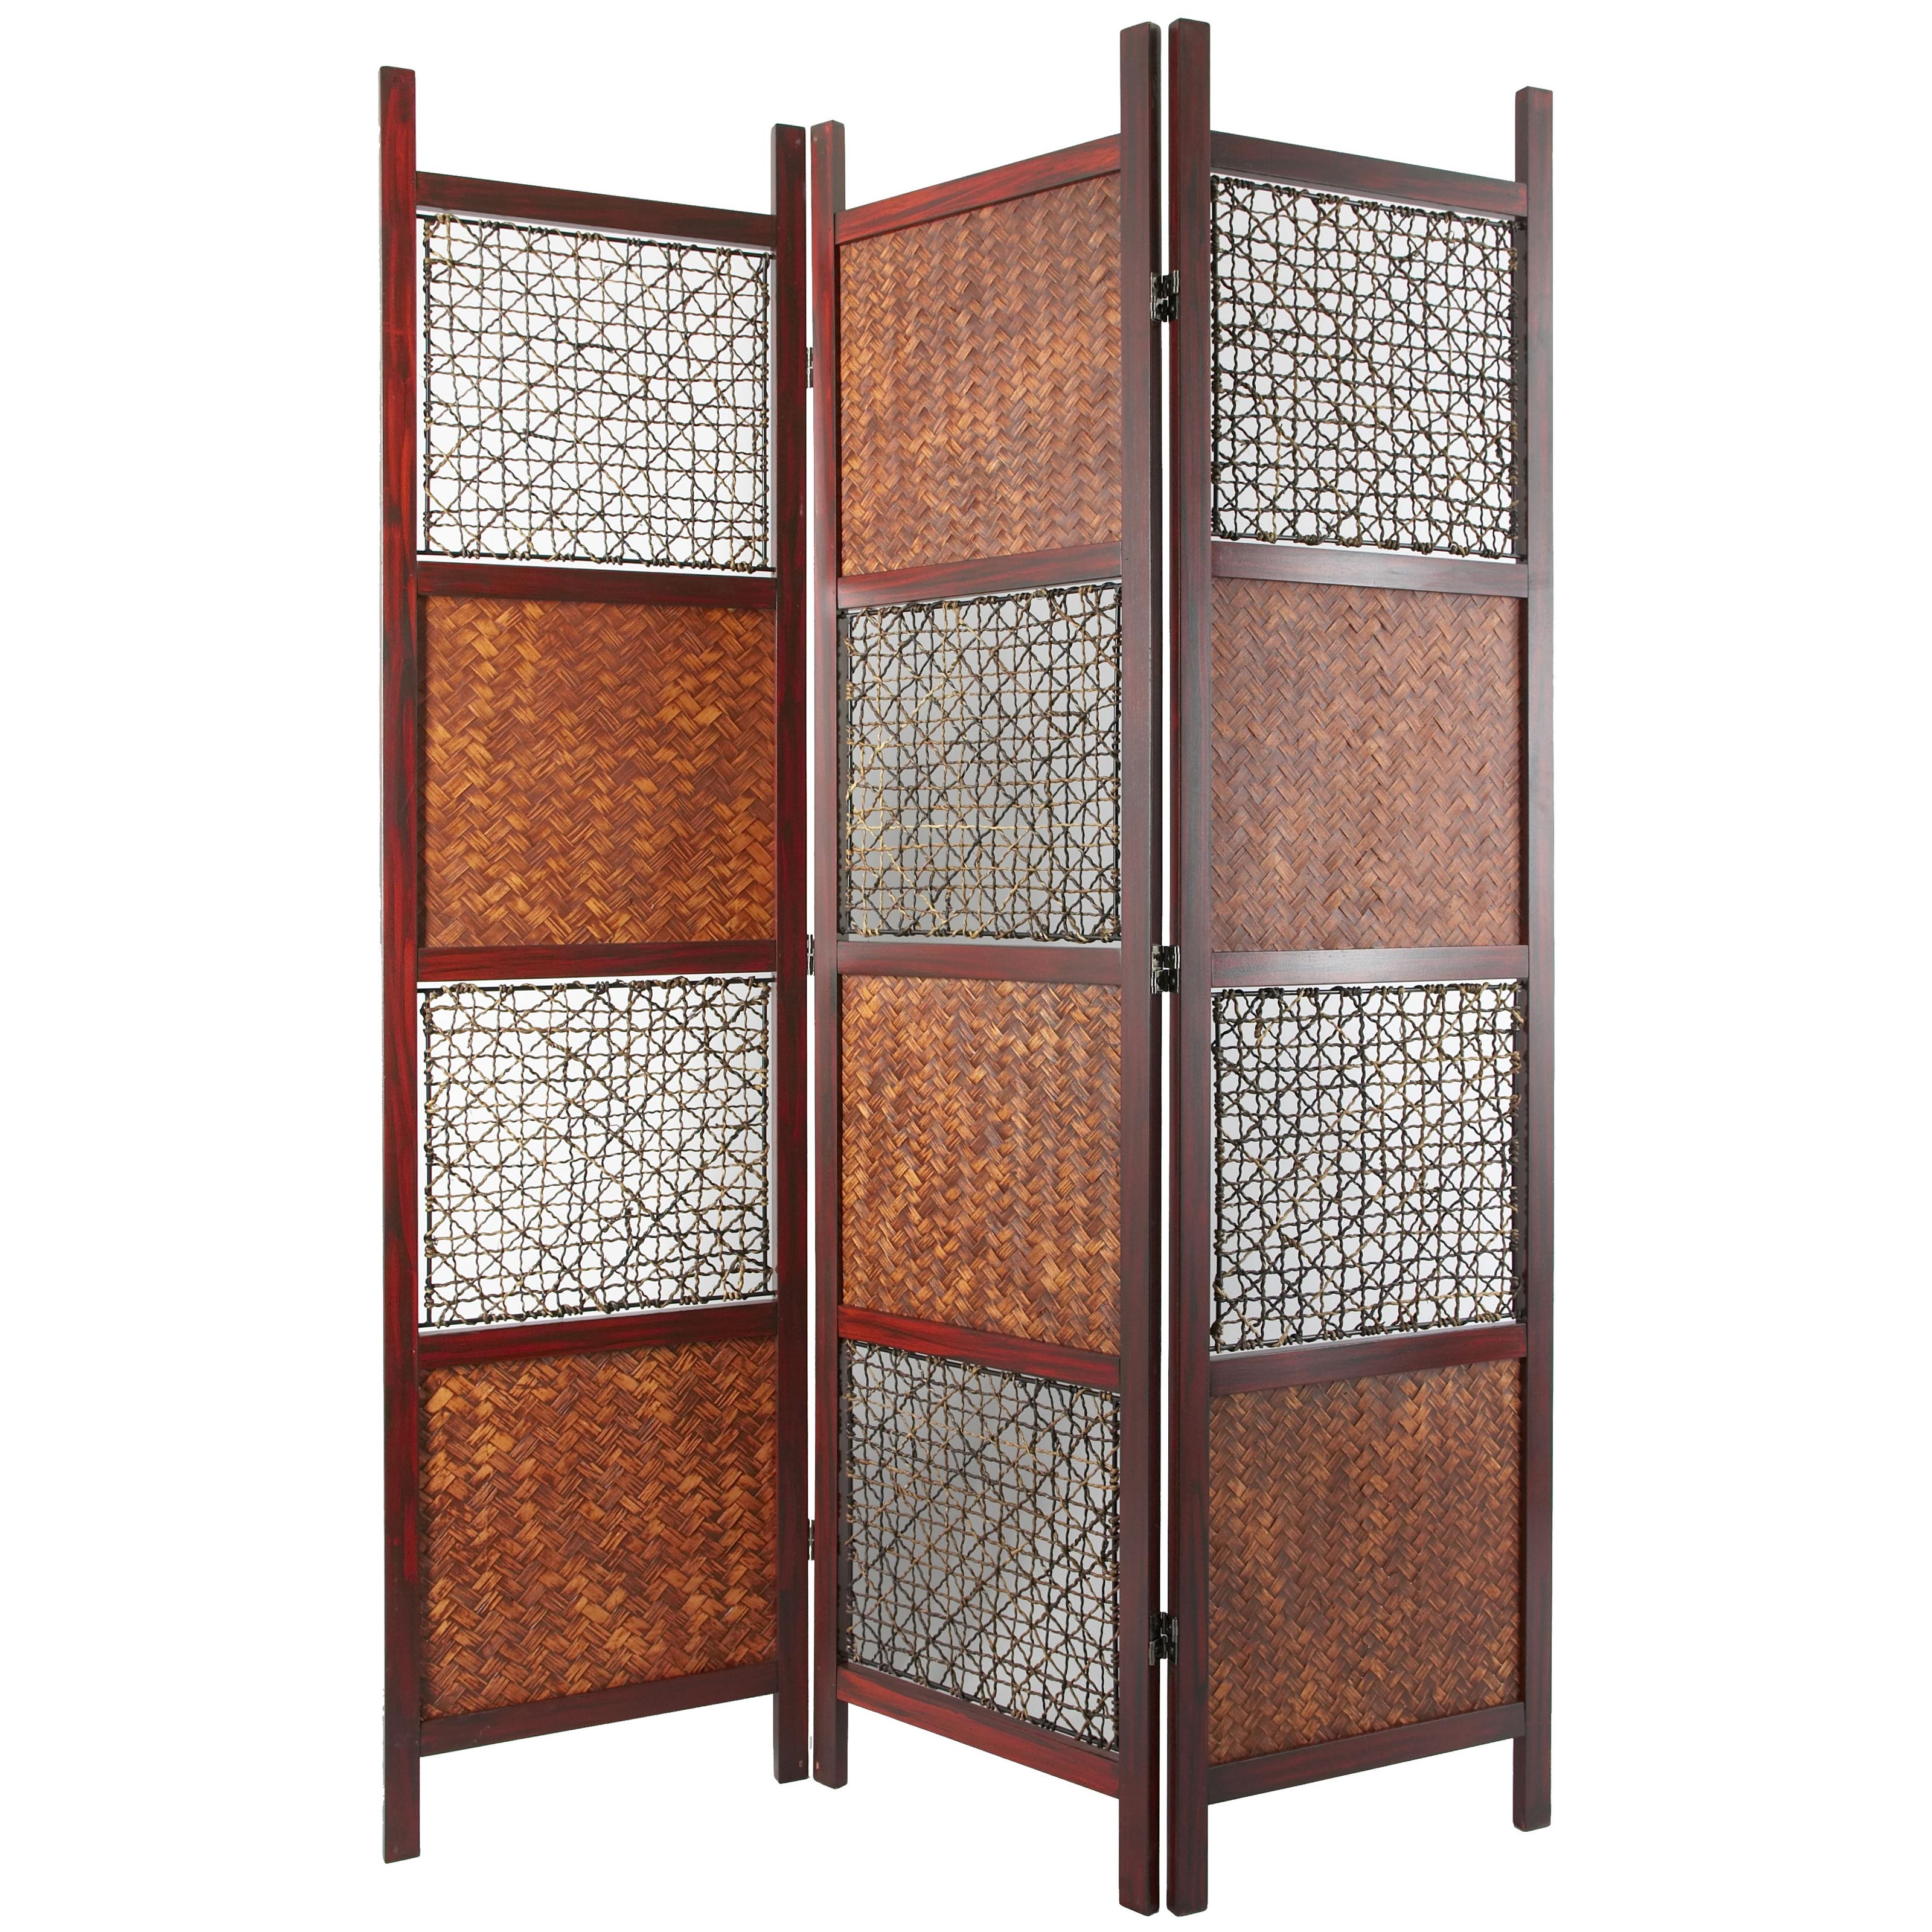 Tranquility Wooden 4 Panel Shutter Screen Room Divider In Black Hayneedle